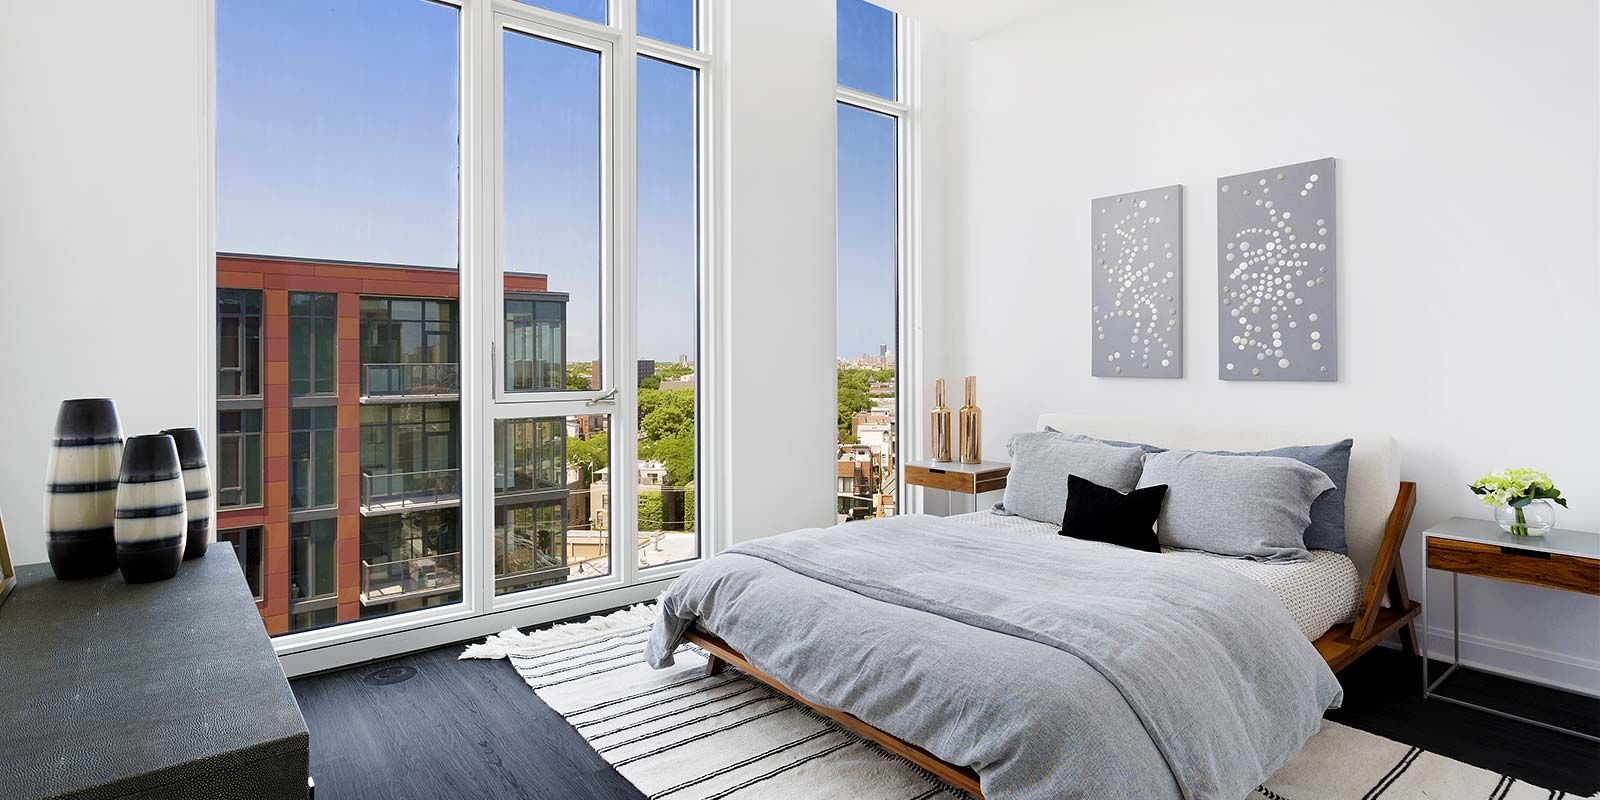 Penthouse Master Bedroom